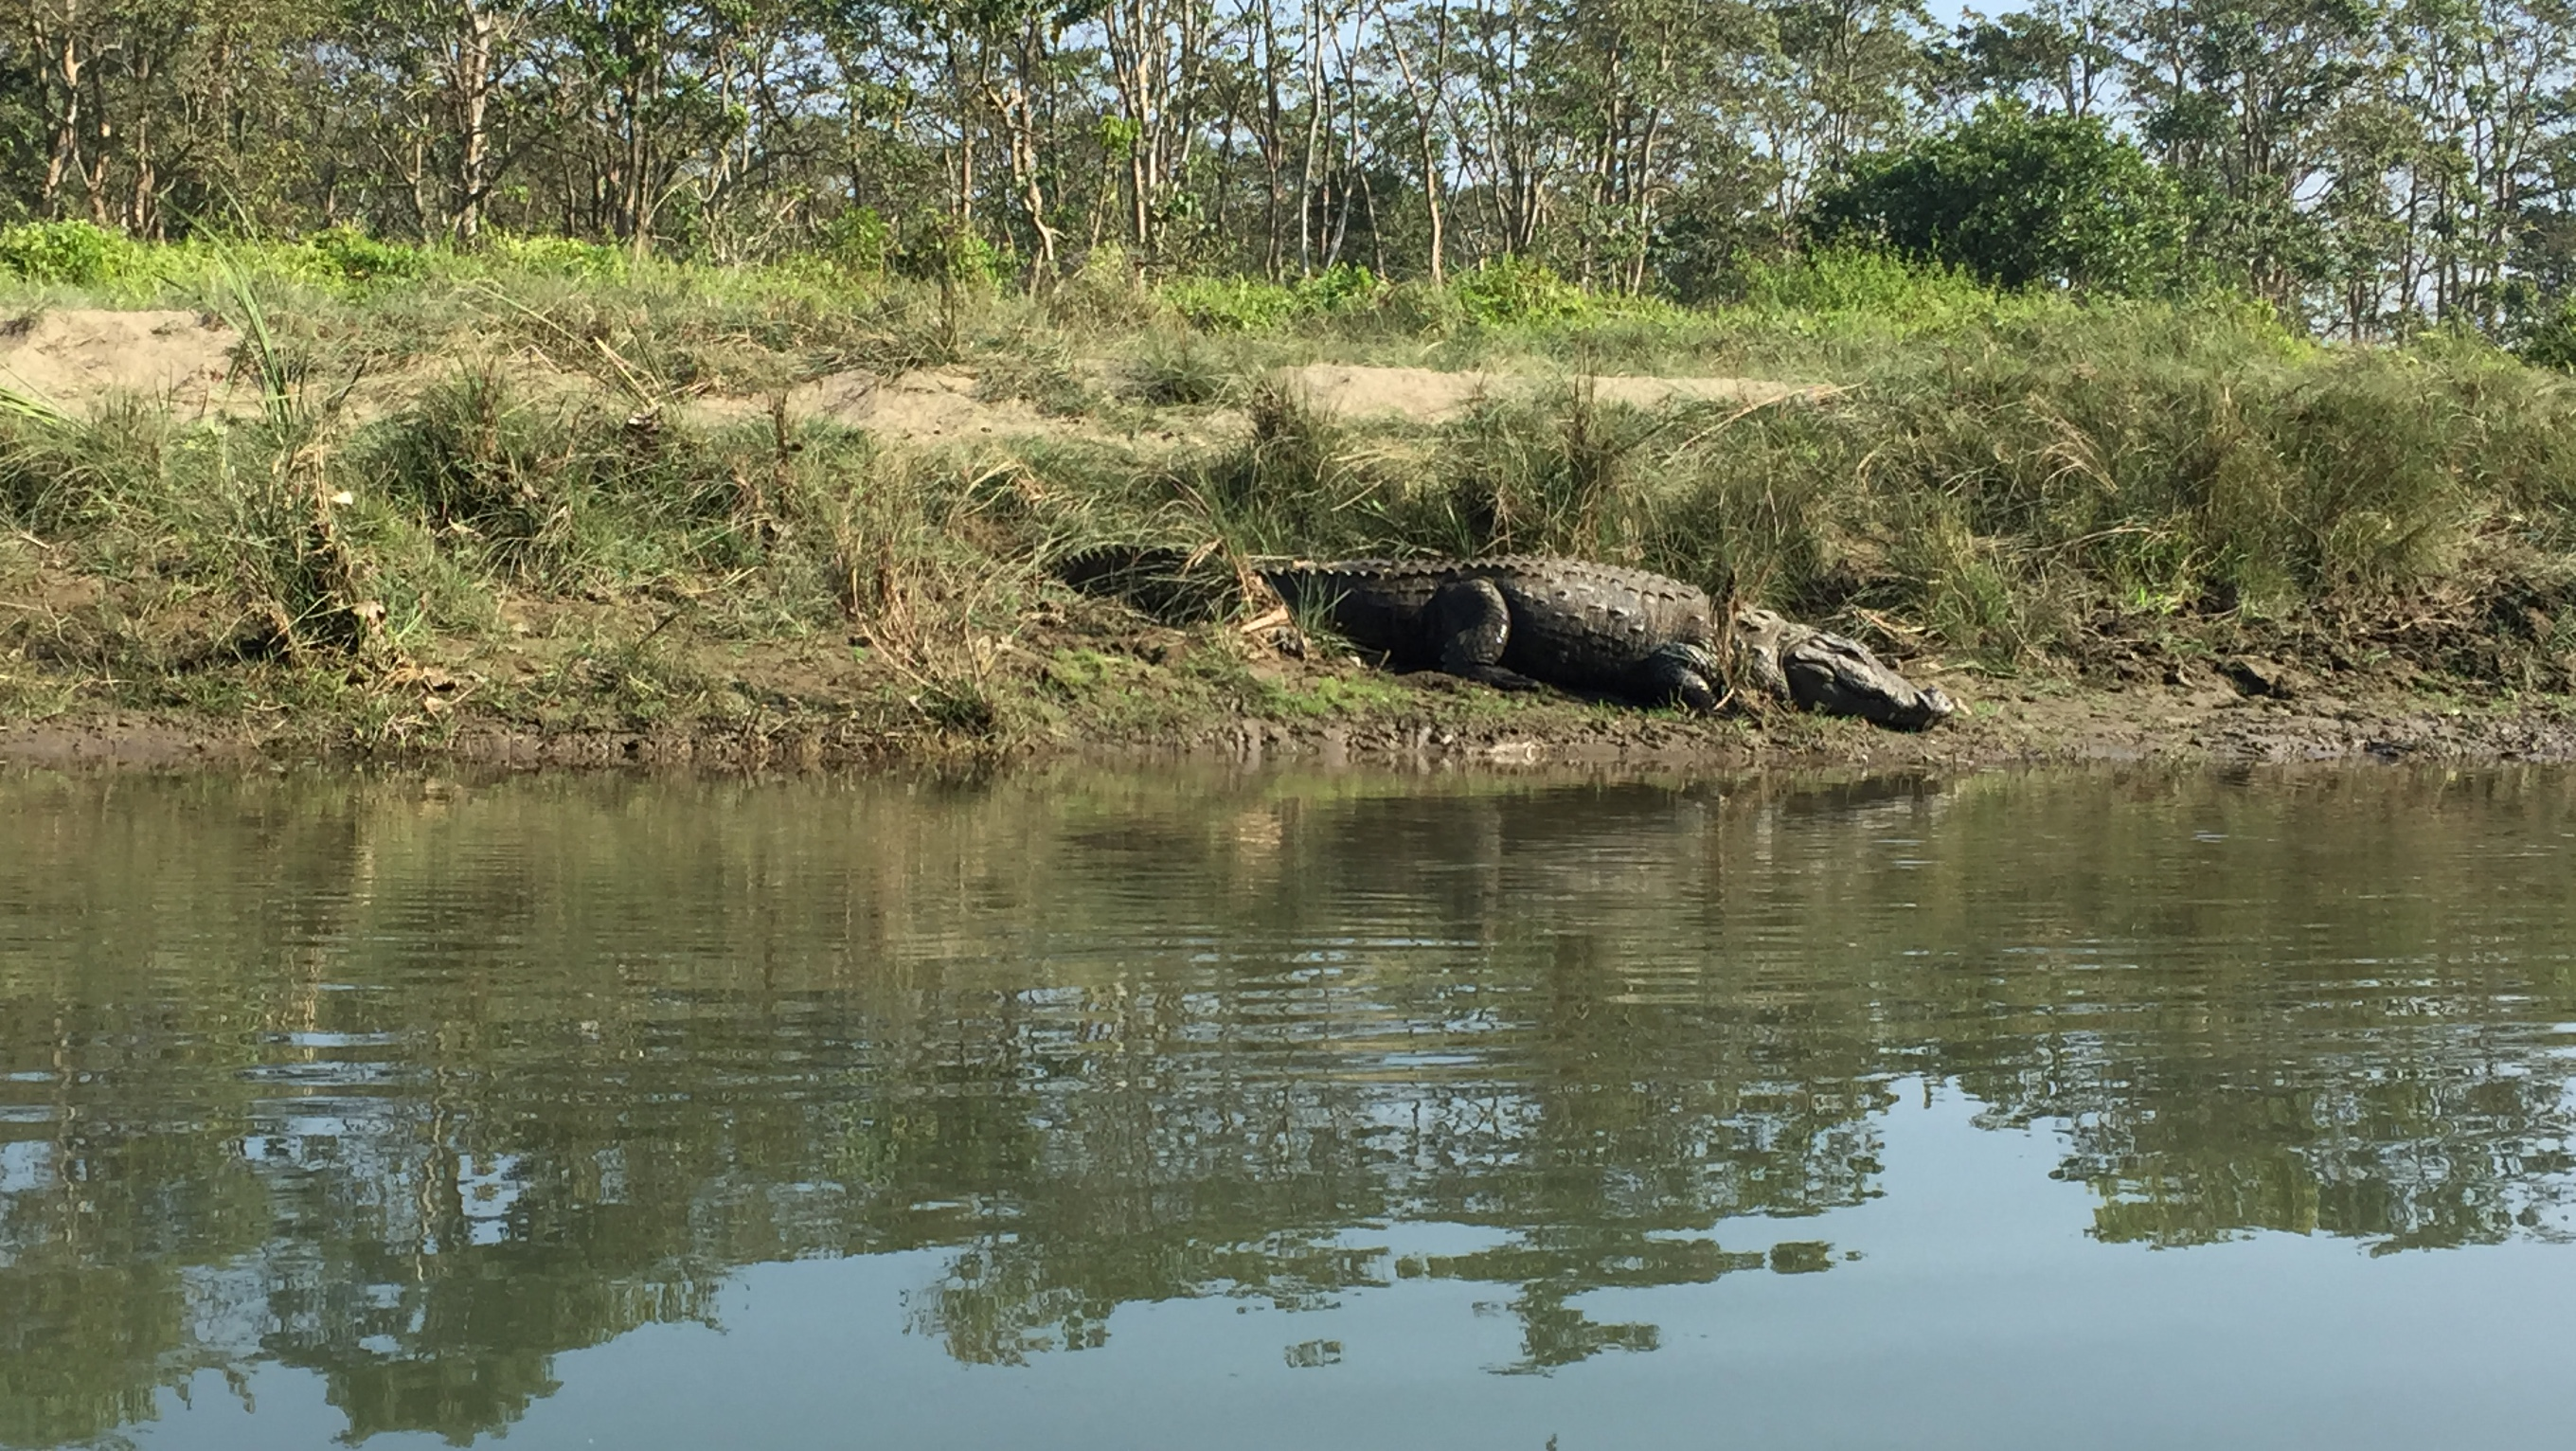 Corcodile during canoeing